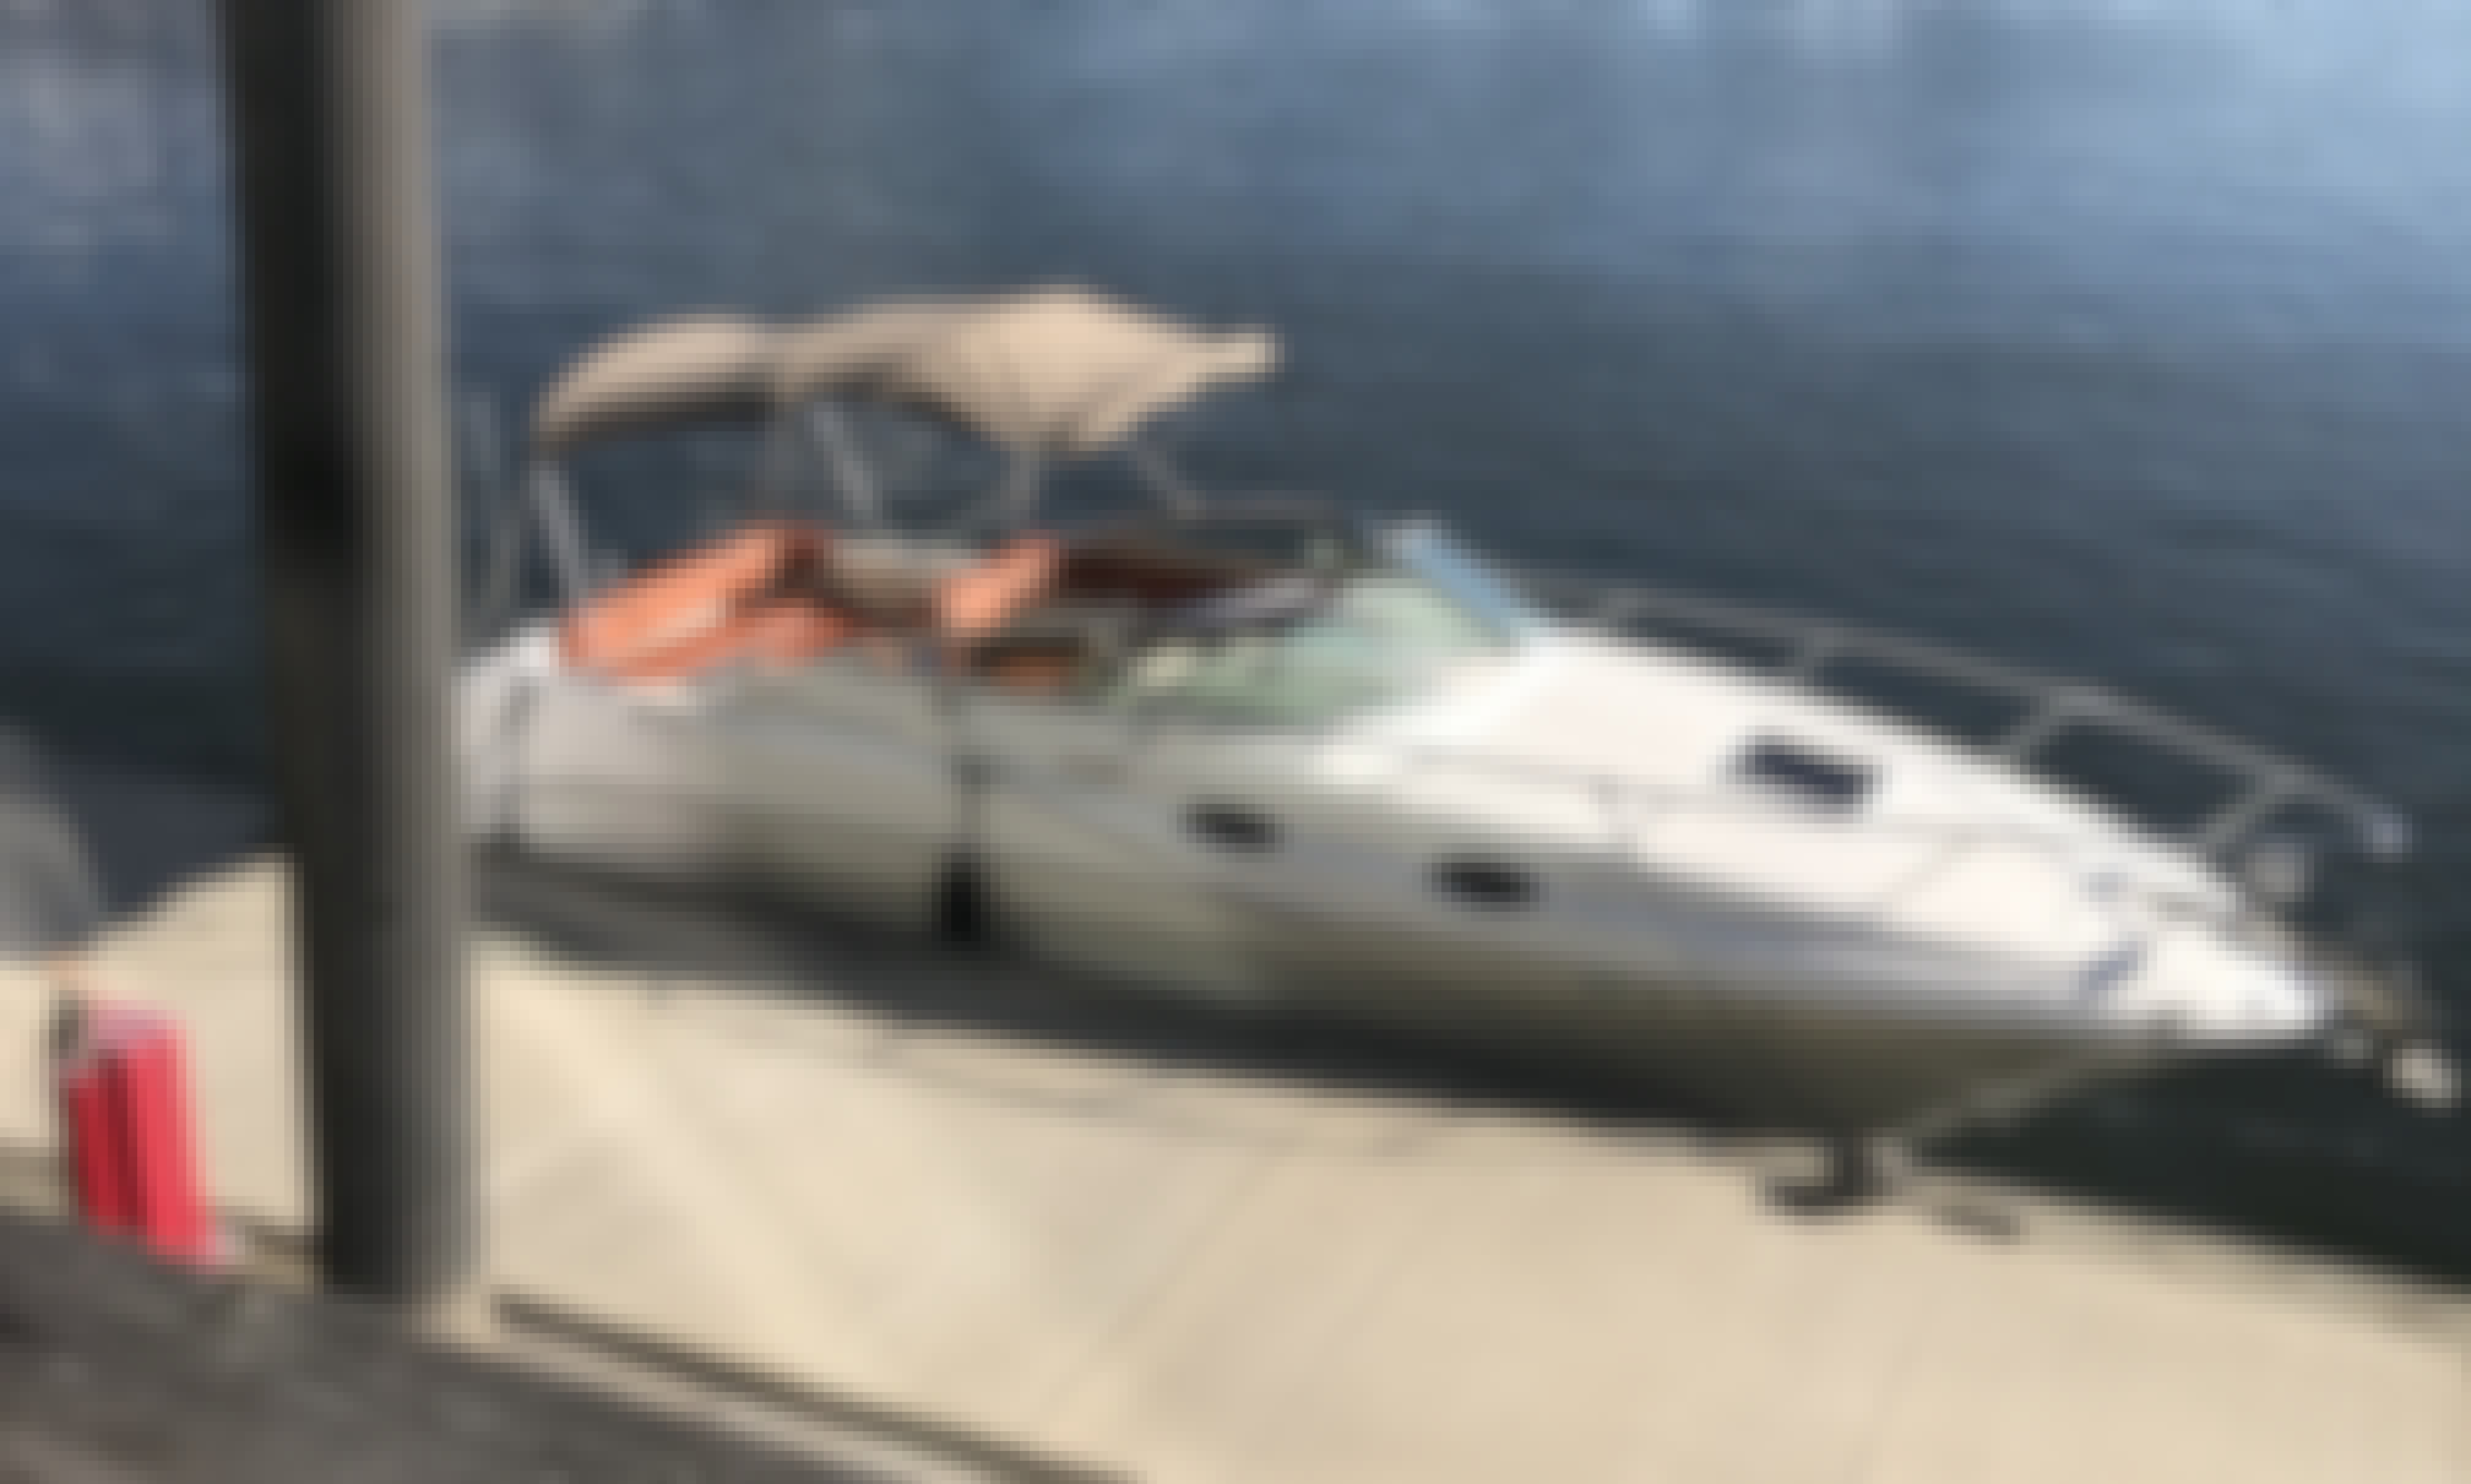 Let your dreams become reality on this custom 28' Sea Ray Sundancer